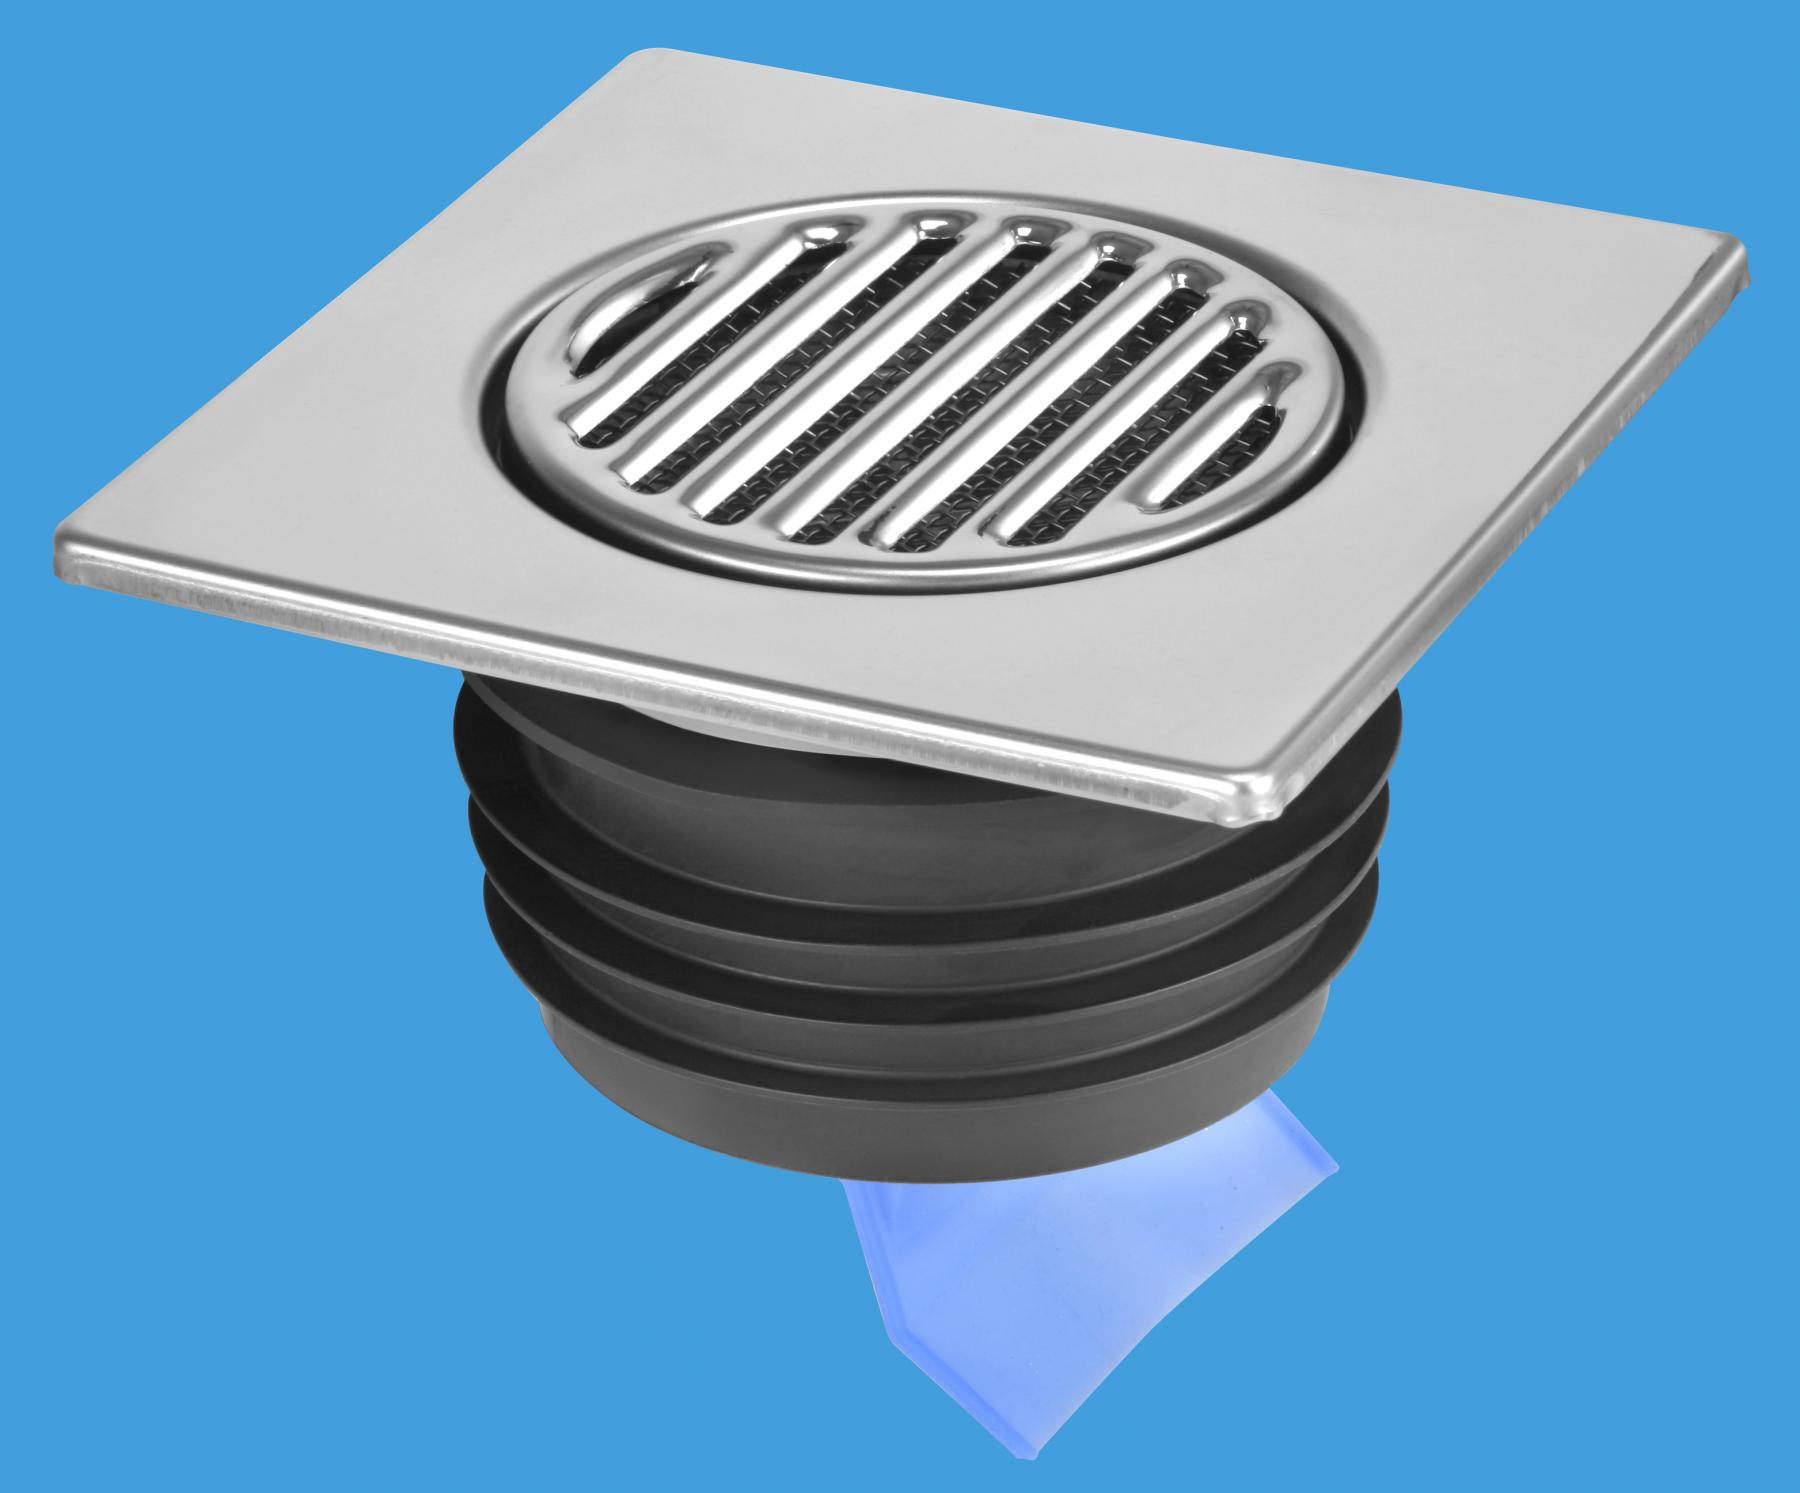 150mm Square Stainless Steel Tile with Internal Non-Return Valve (Push-fit Outlet)